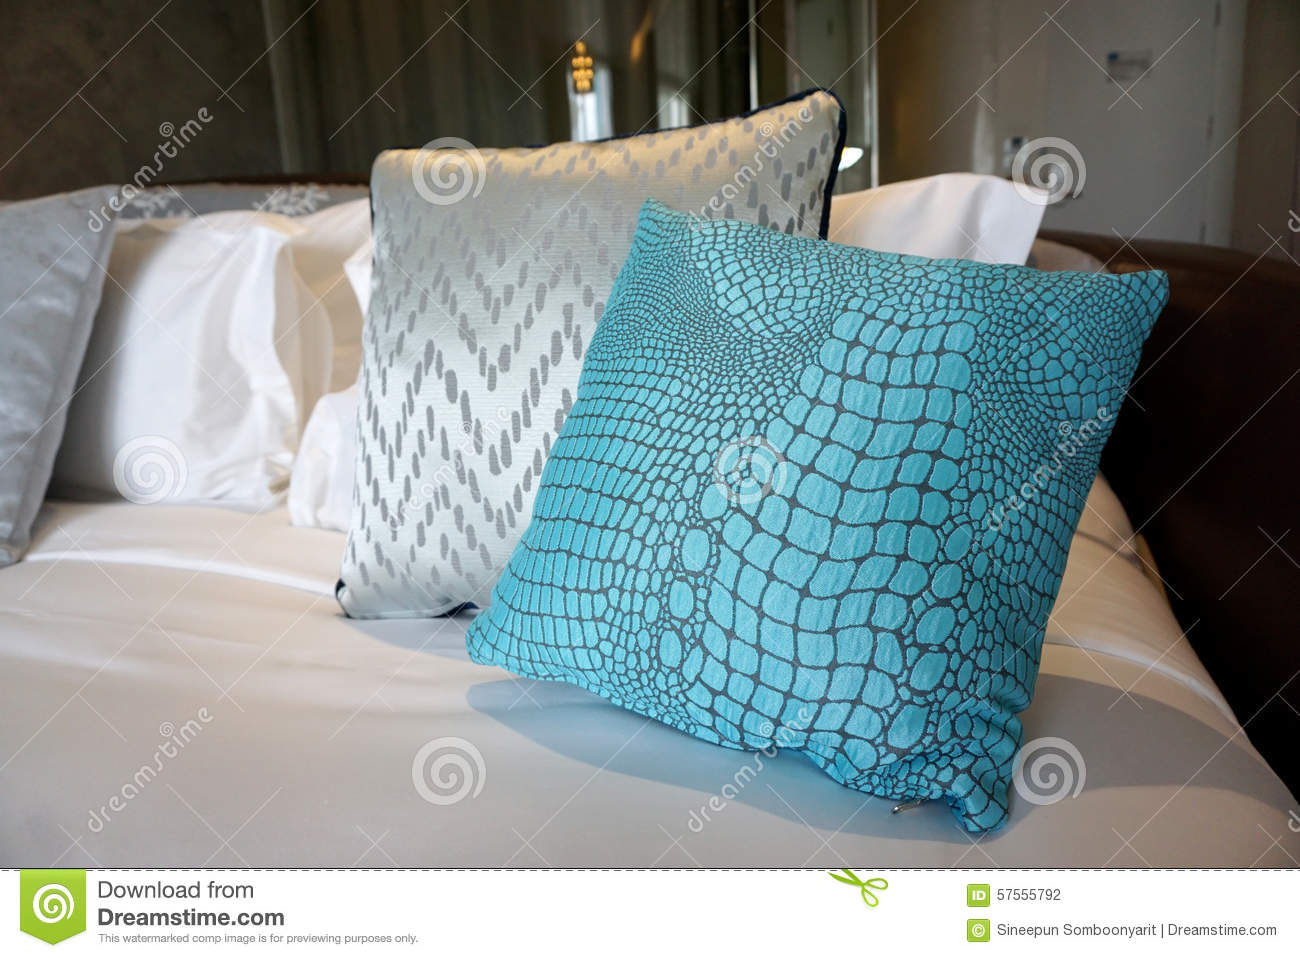 coussin bleu de tissu de peau de crocodile sur le lit photo stock image 57555792. Black Bedroom Furniture Sets. Home Design Ideas